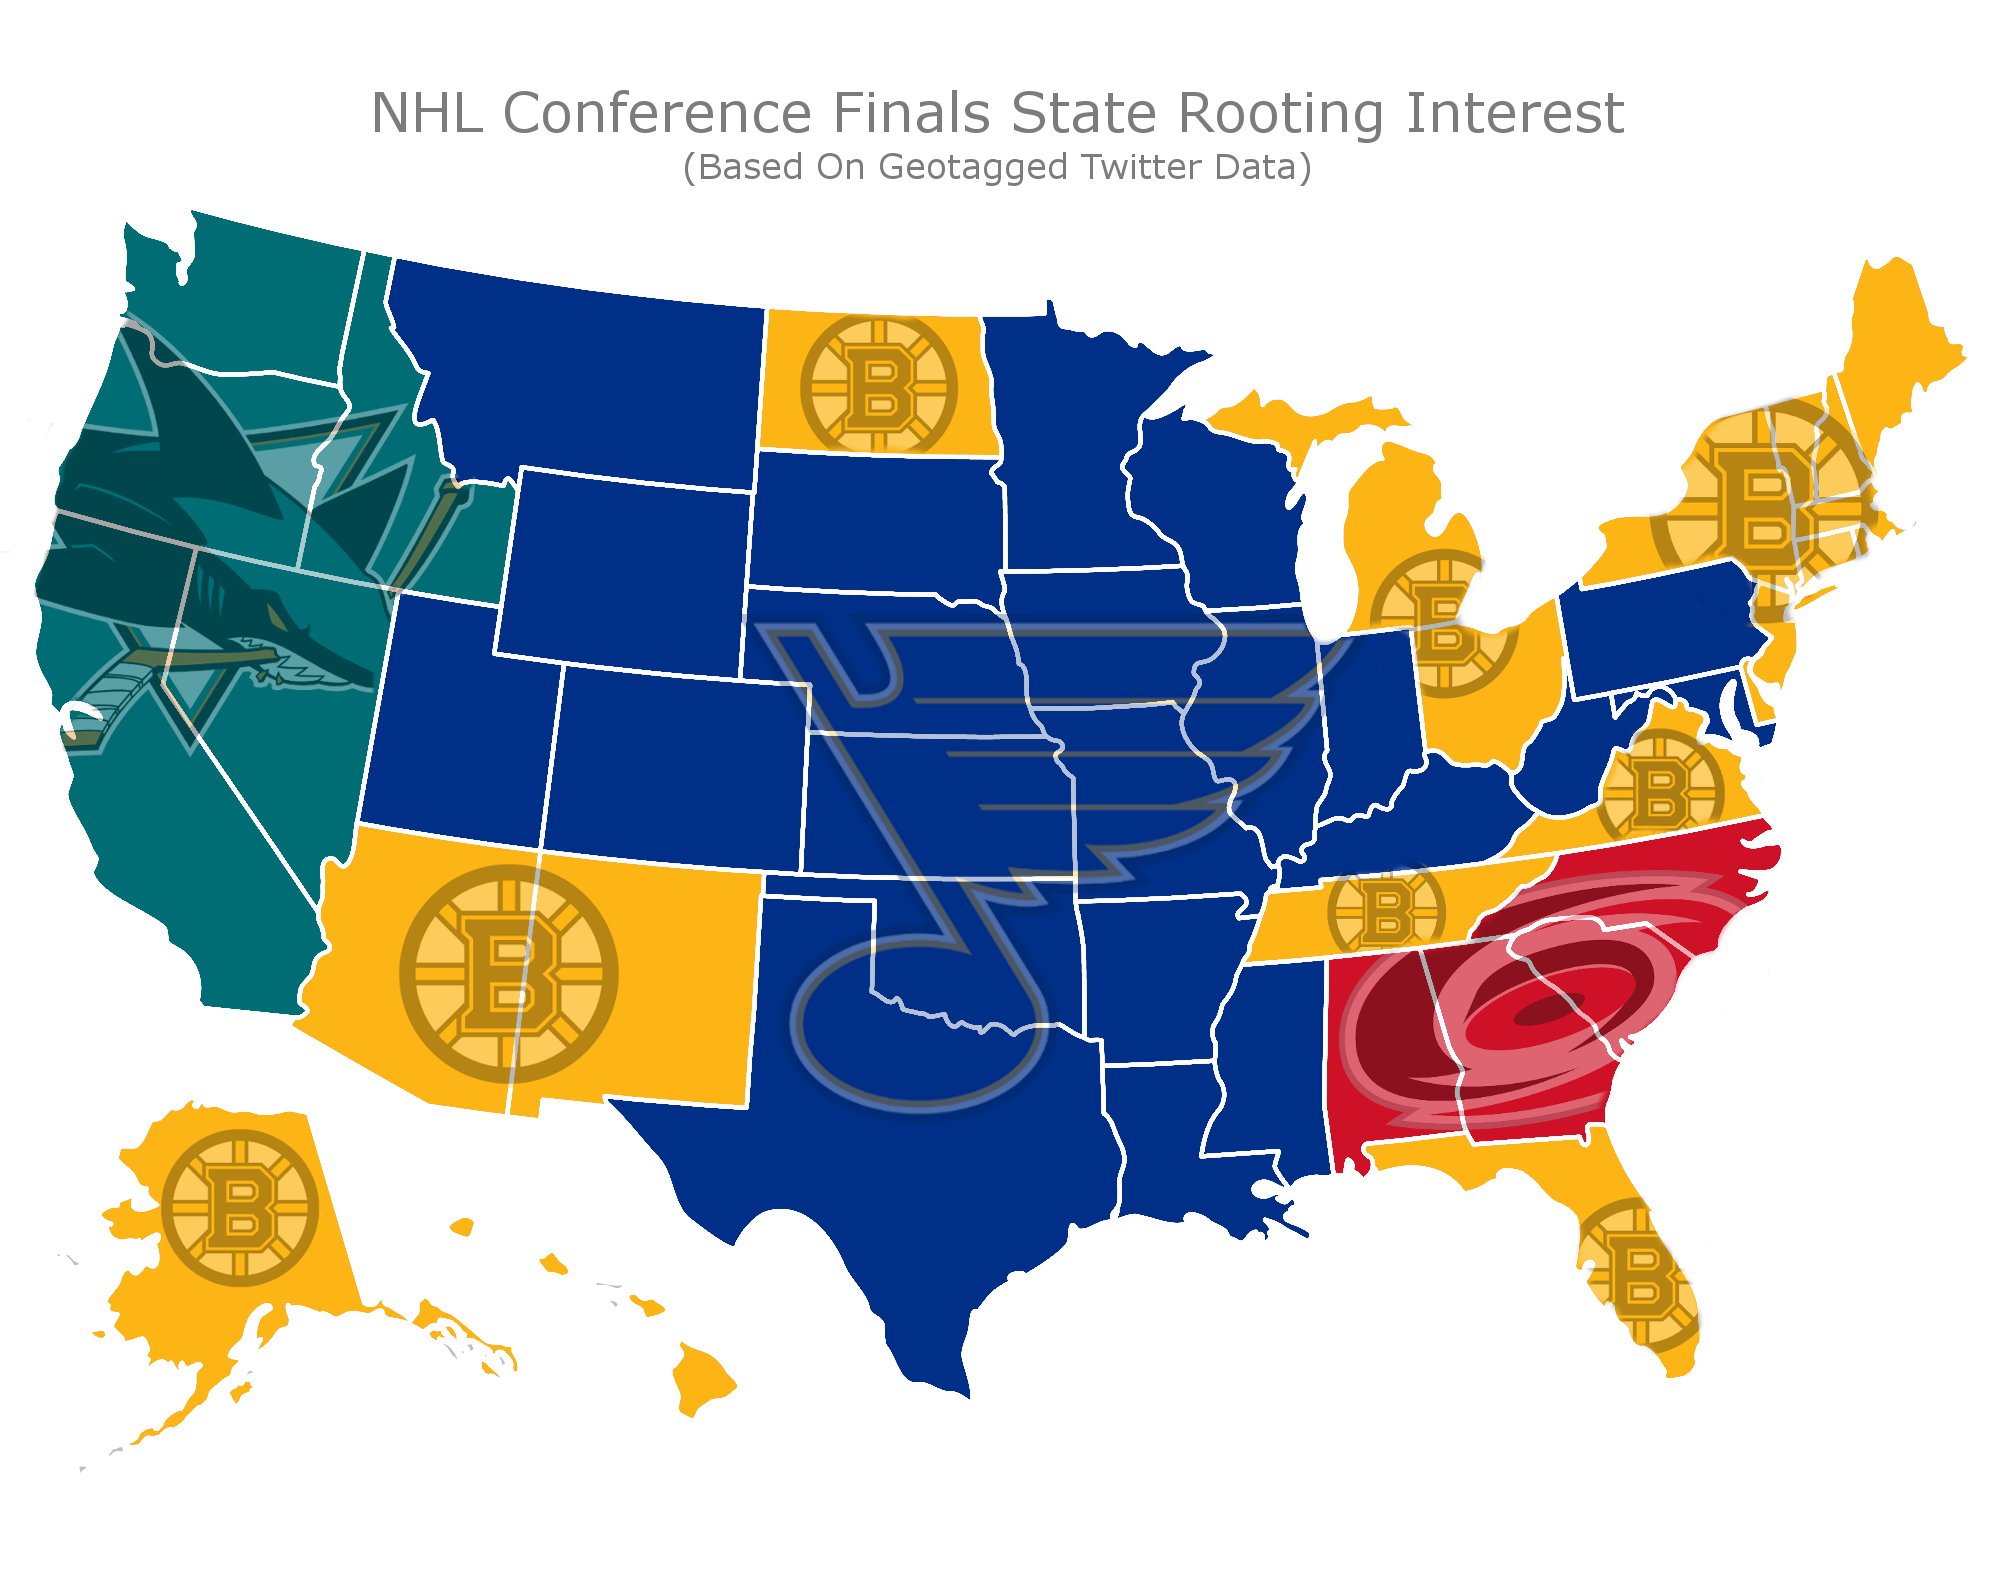 Stanley Cup Support Map (Credit: sportsinsider.com)